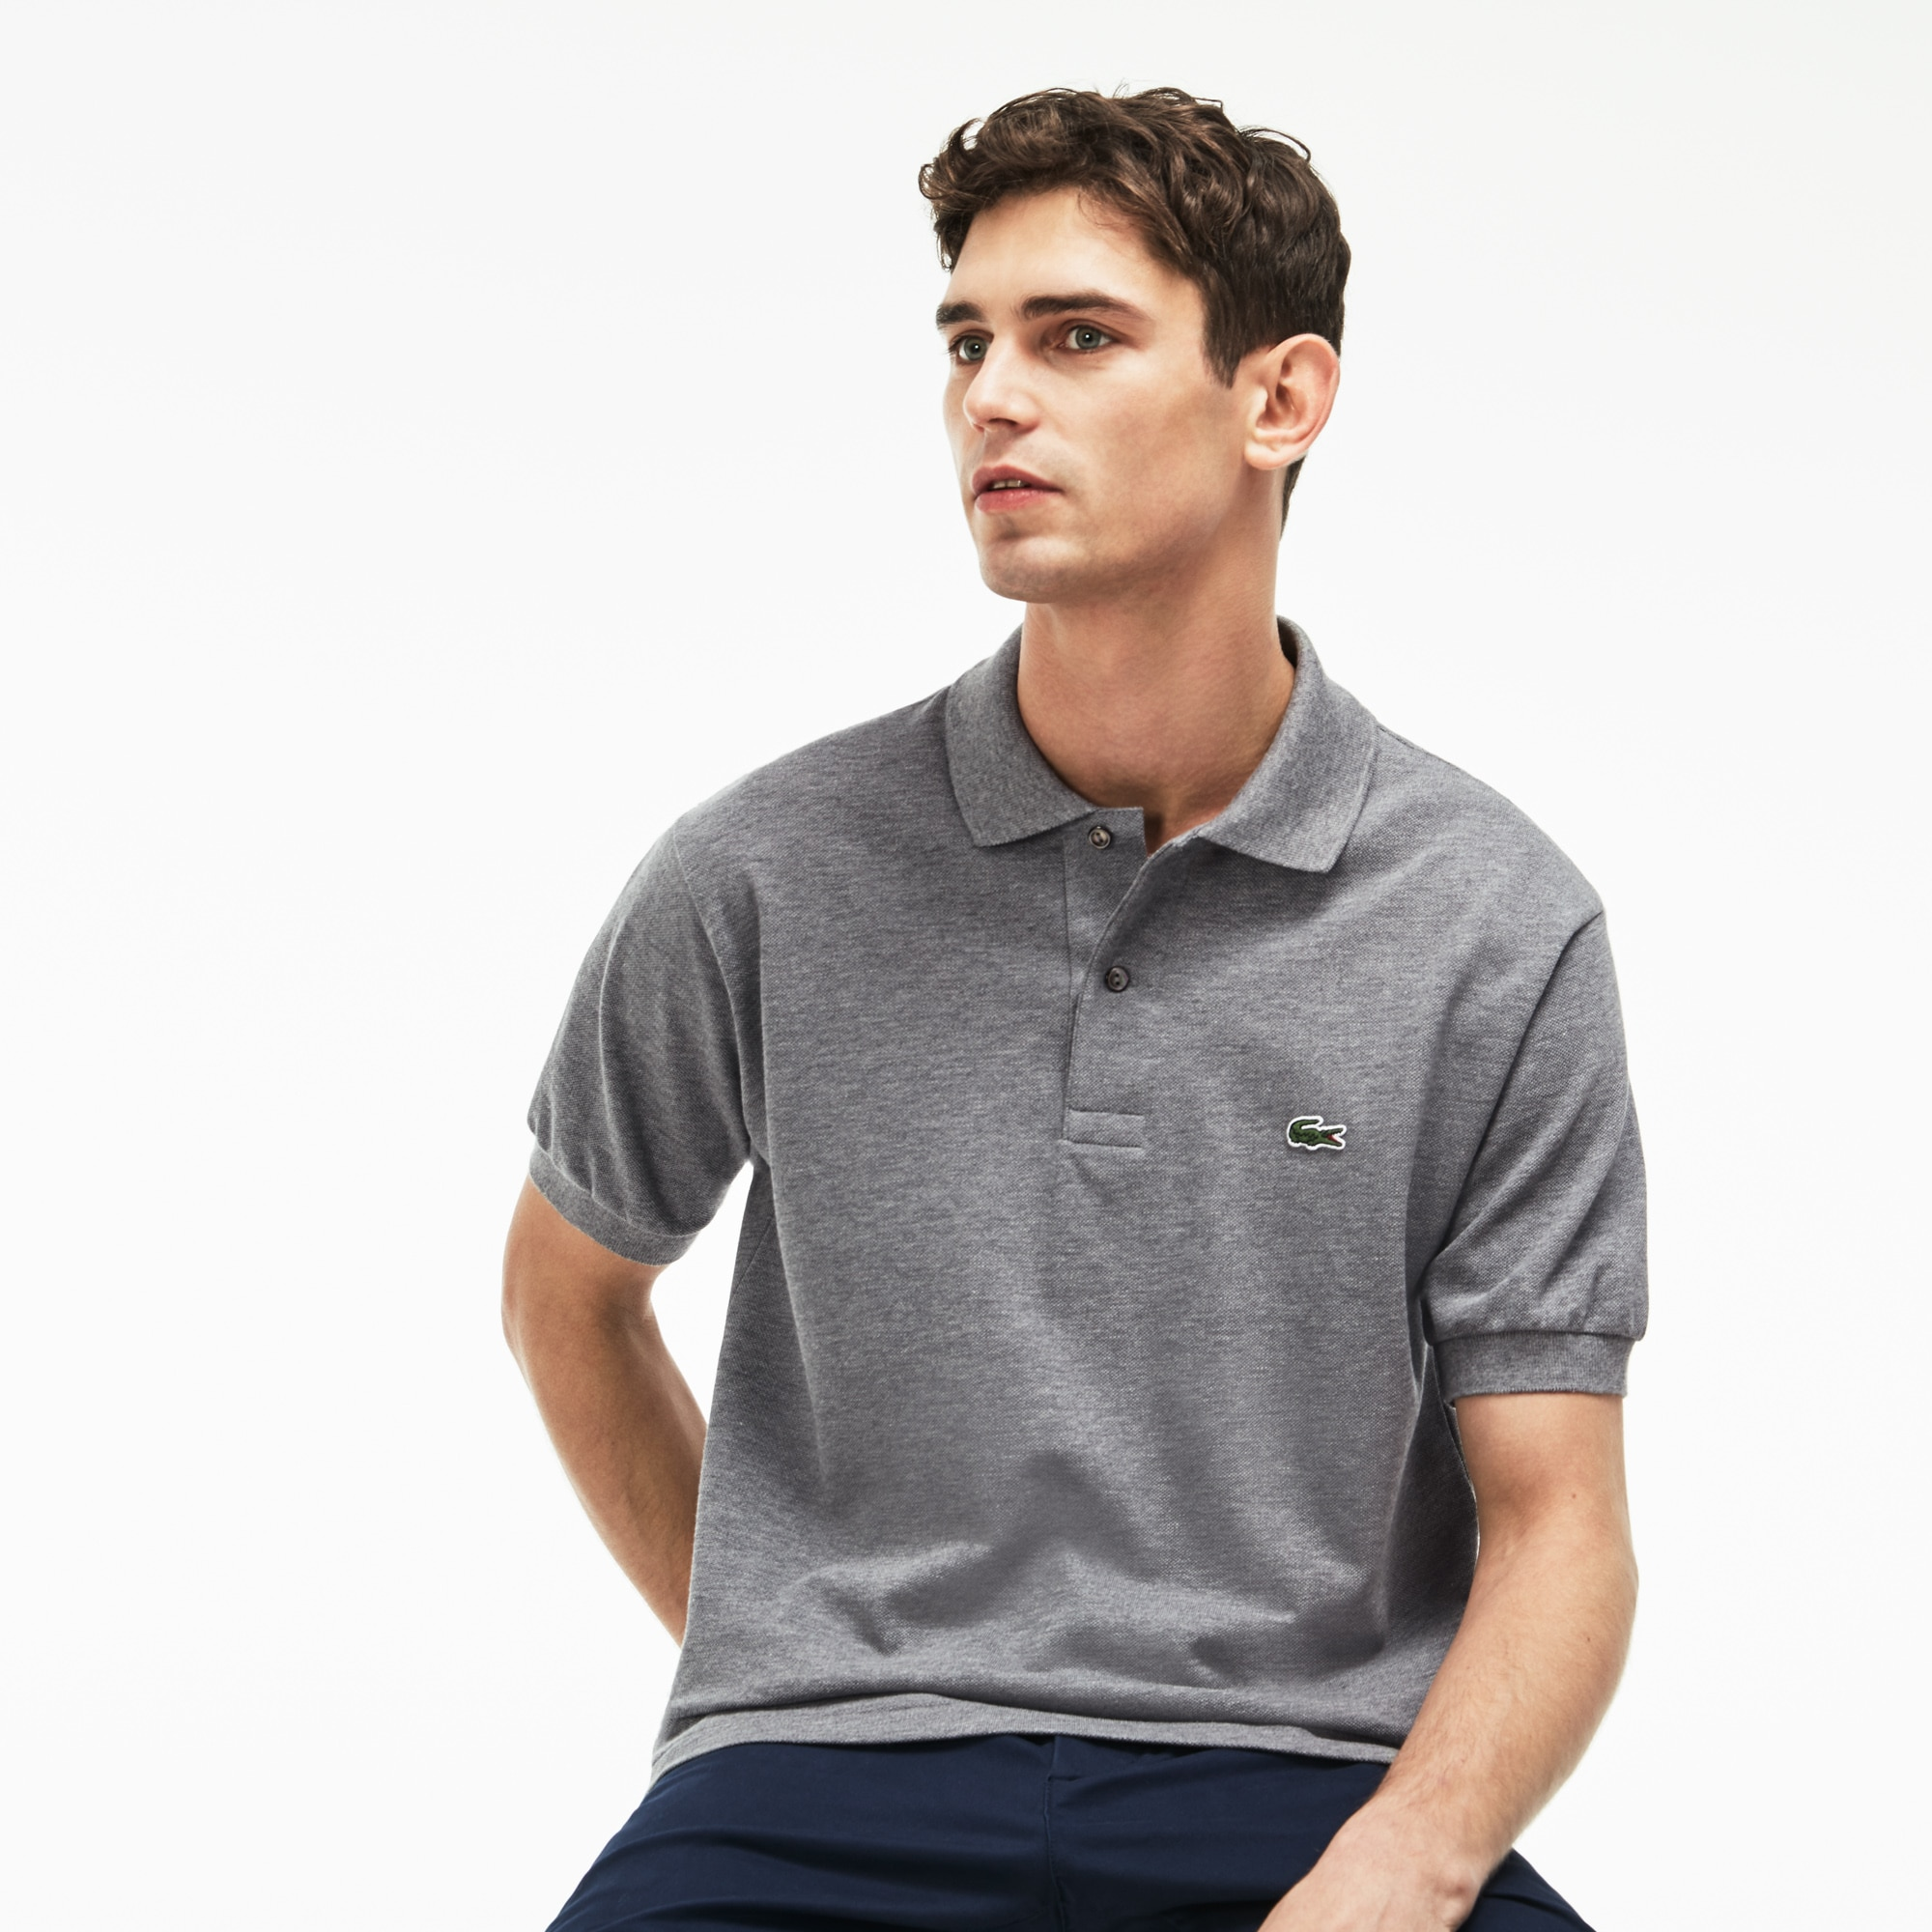 Men's Classic L.12.12 Chiné Piqué Polo